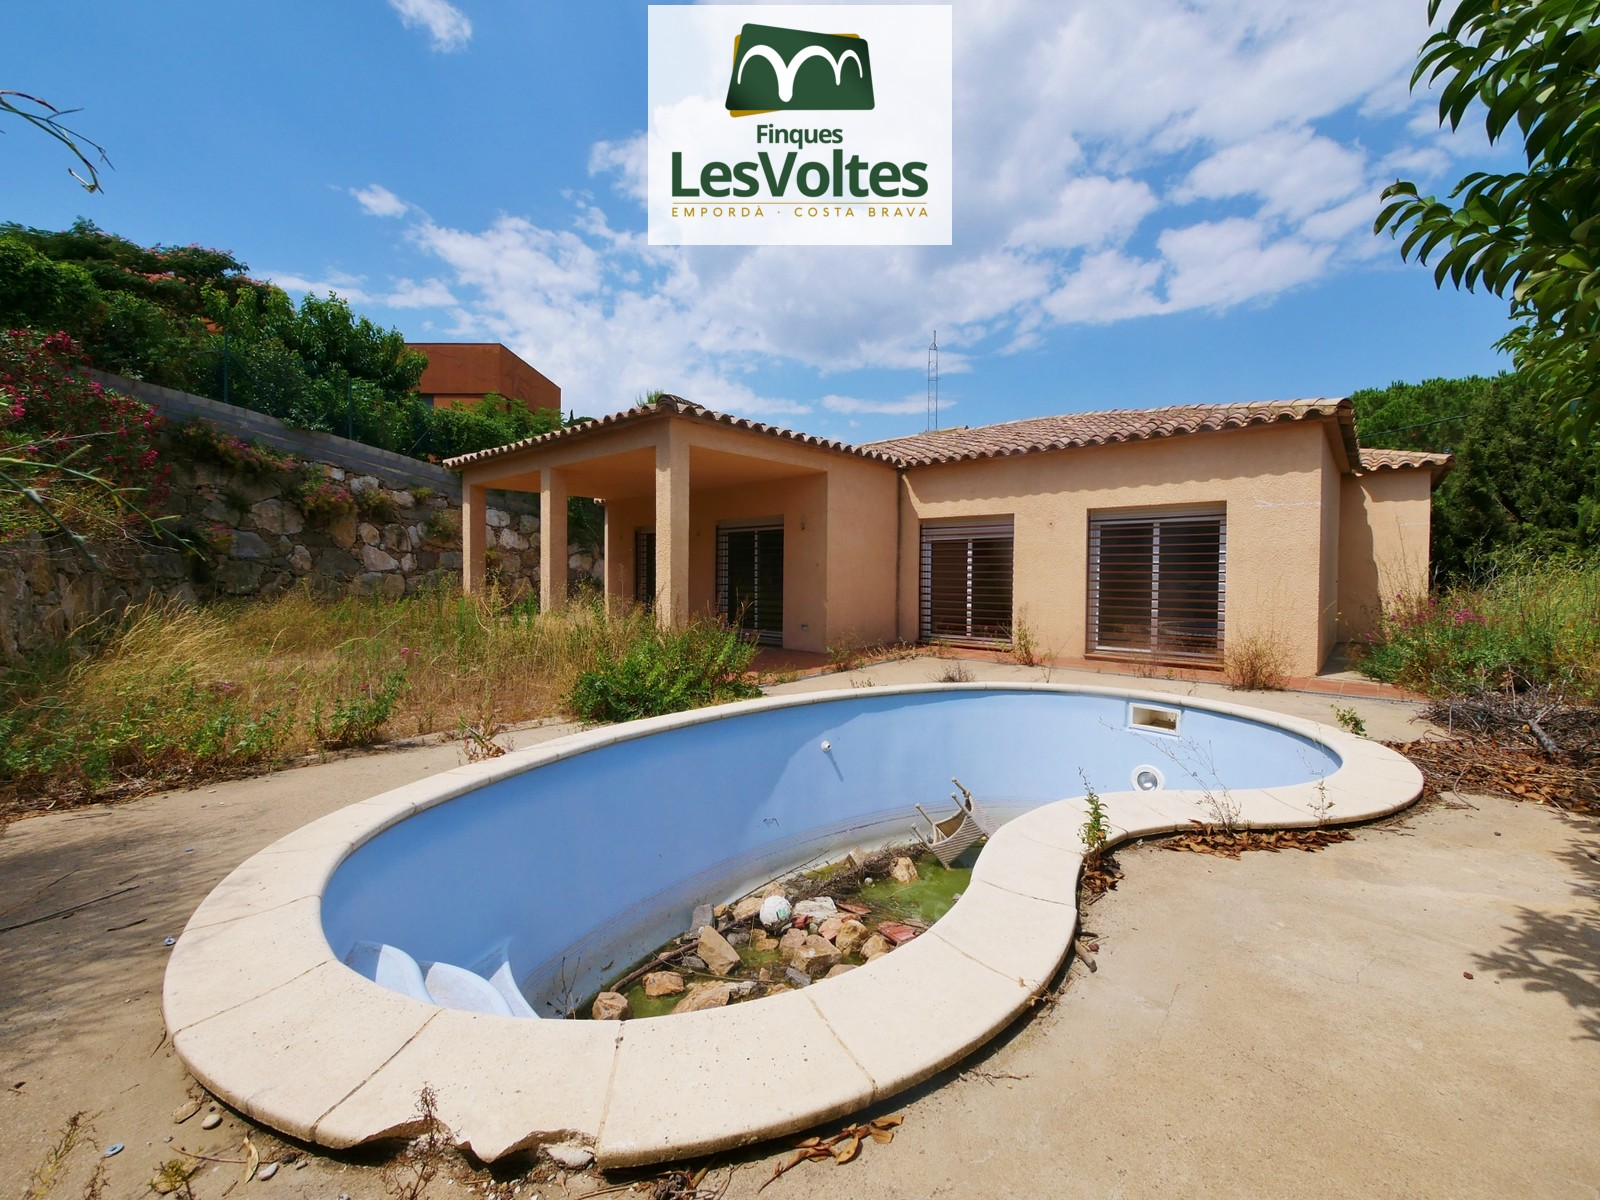 SINGLE FAMILY HOUSE WITH POOL AND GARDEN FOR SALE IN BEGUR. LOCATED NEAR THE BEST BEACHES ON THE COSTA BRAVA.